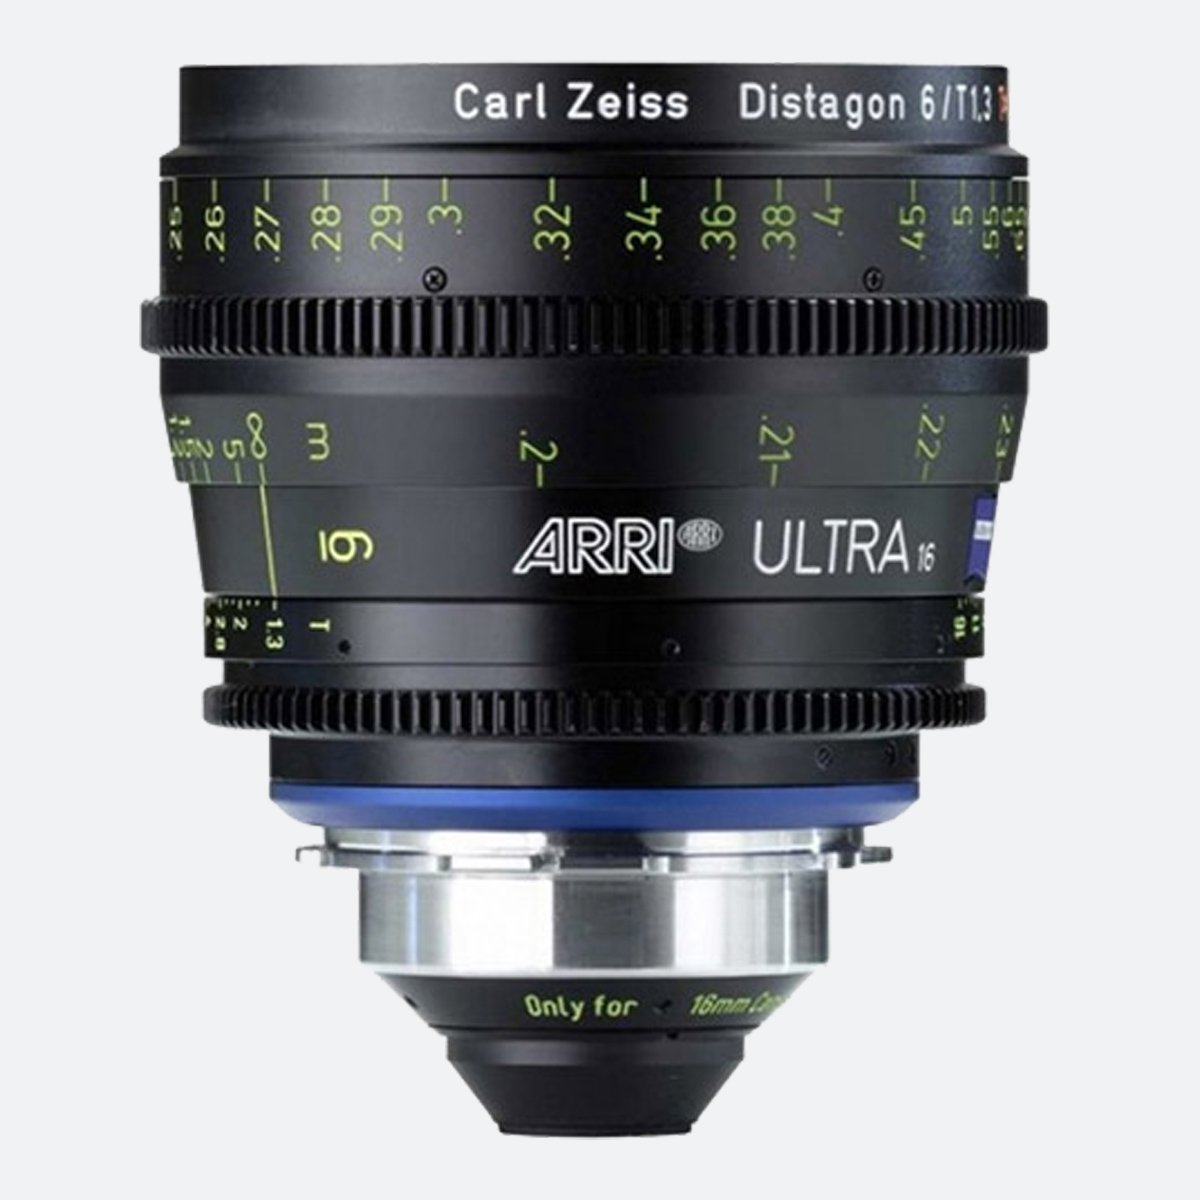 ARRI Ultra 16 T1.3 / 6 mm Super-Wide Lens